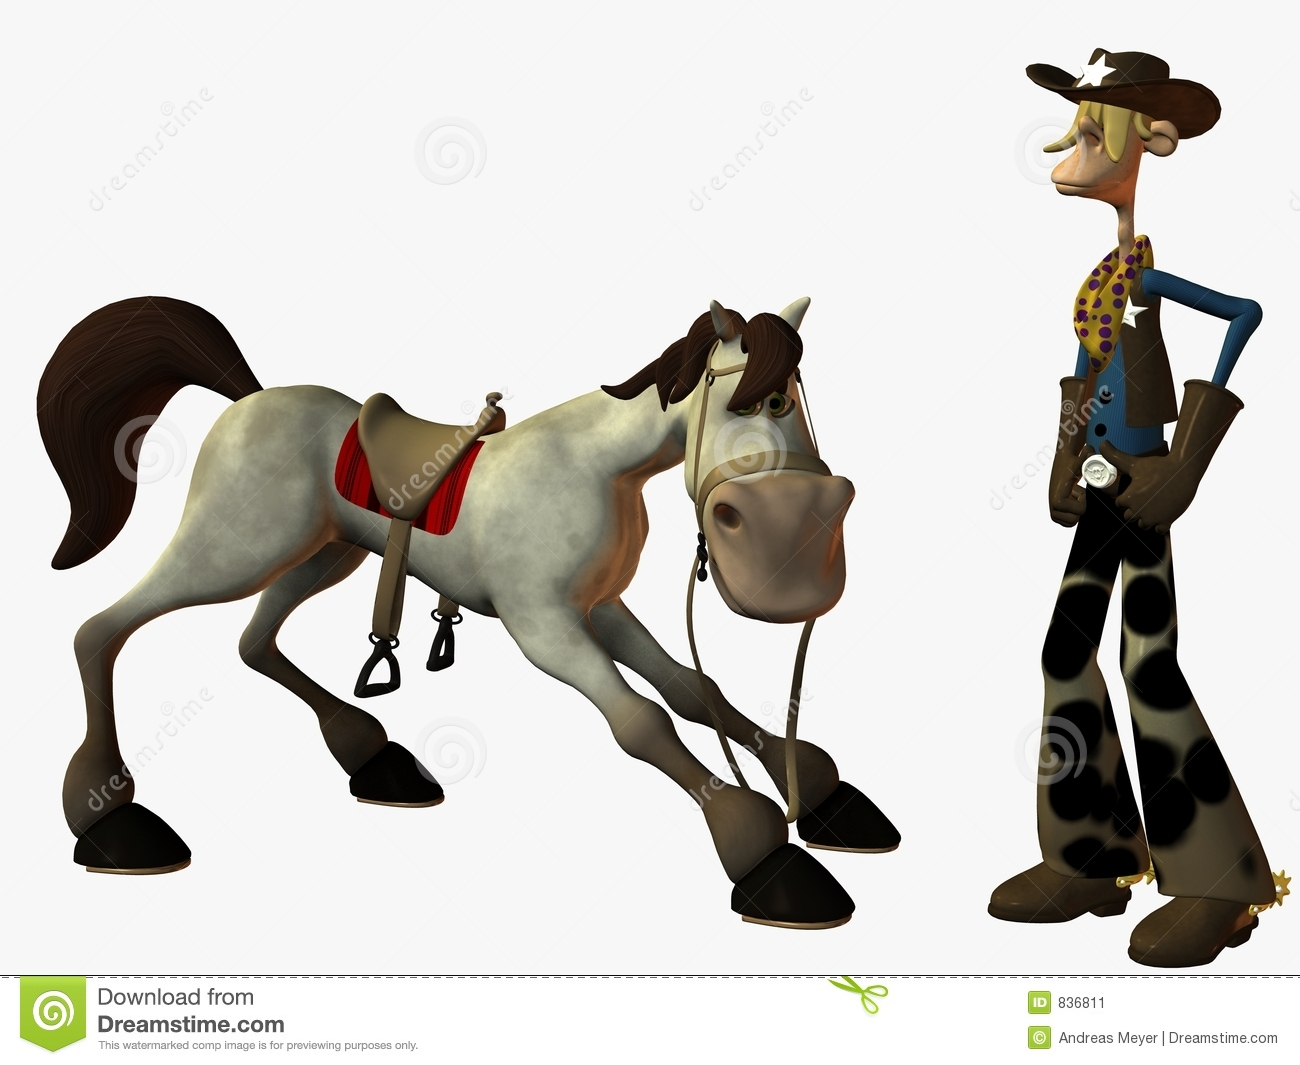 Eddy and the Sheriff